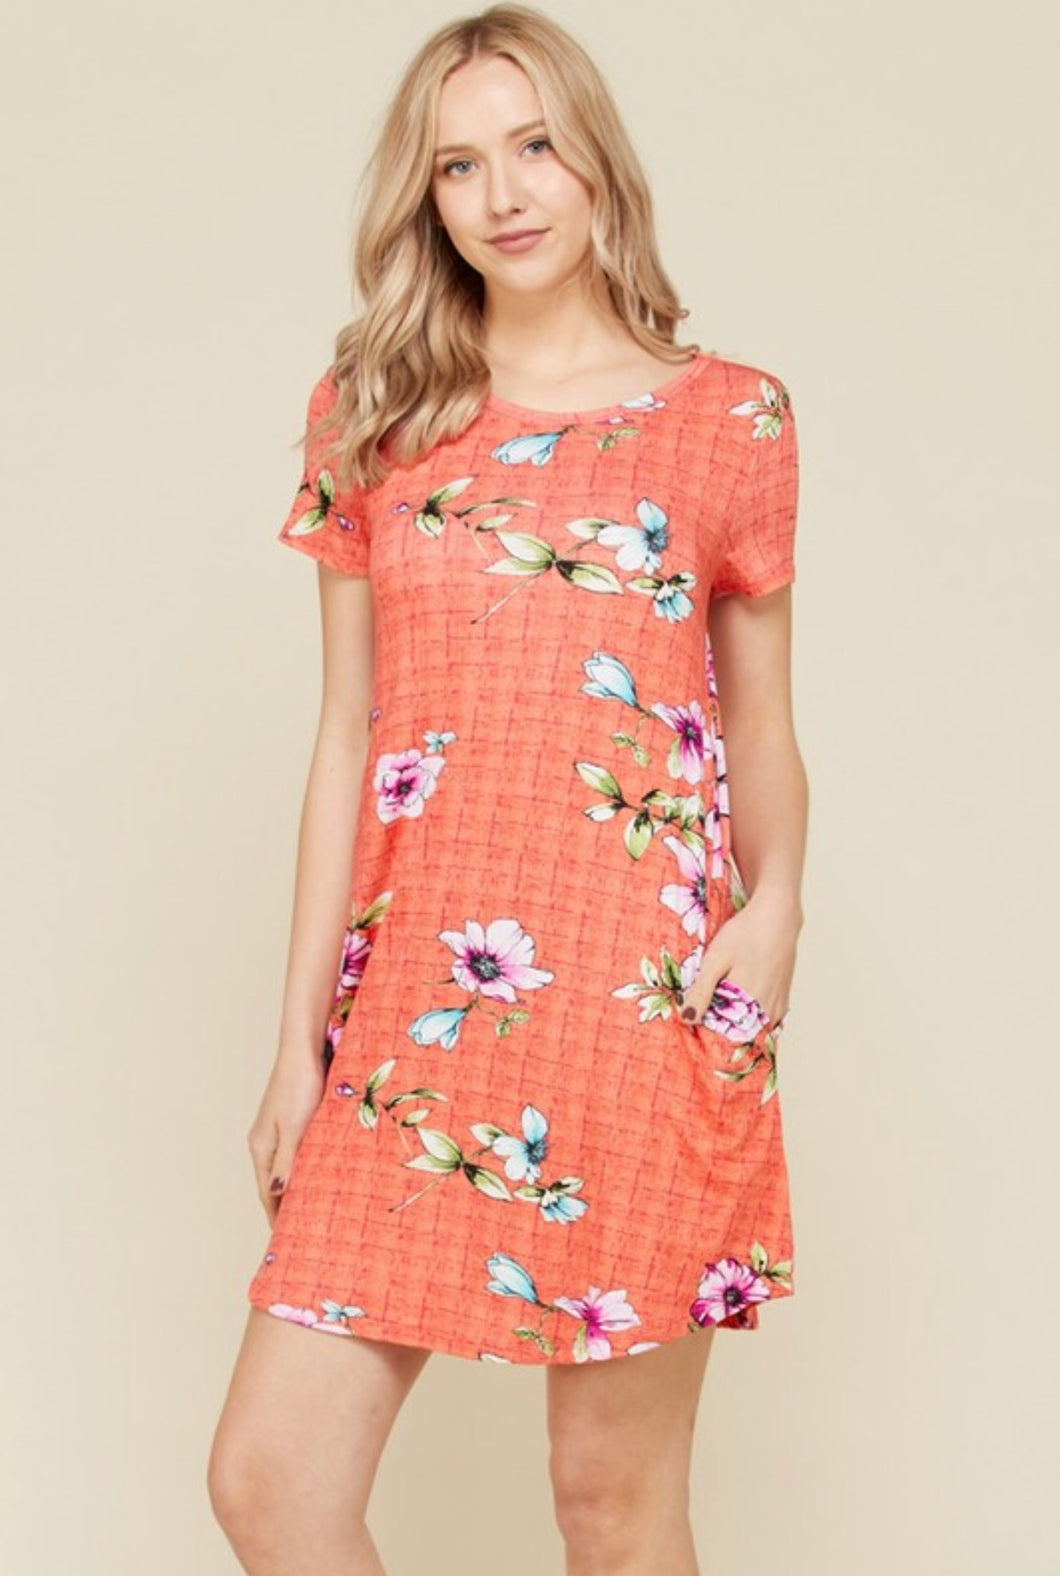 Floral Swing Tunic - SOVA Boutique